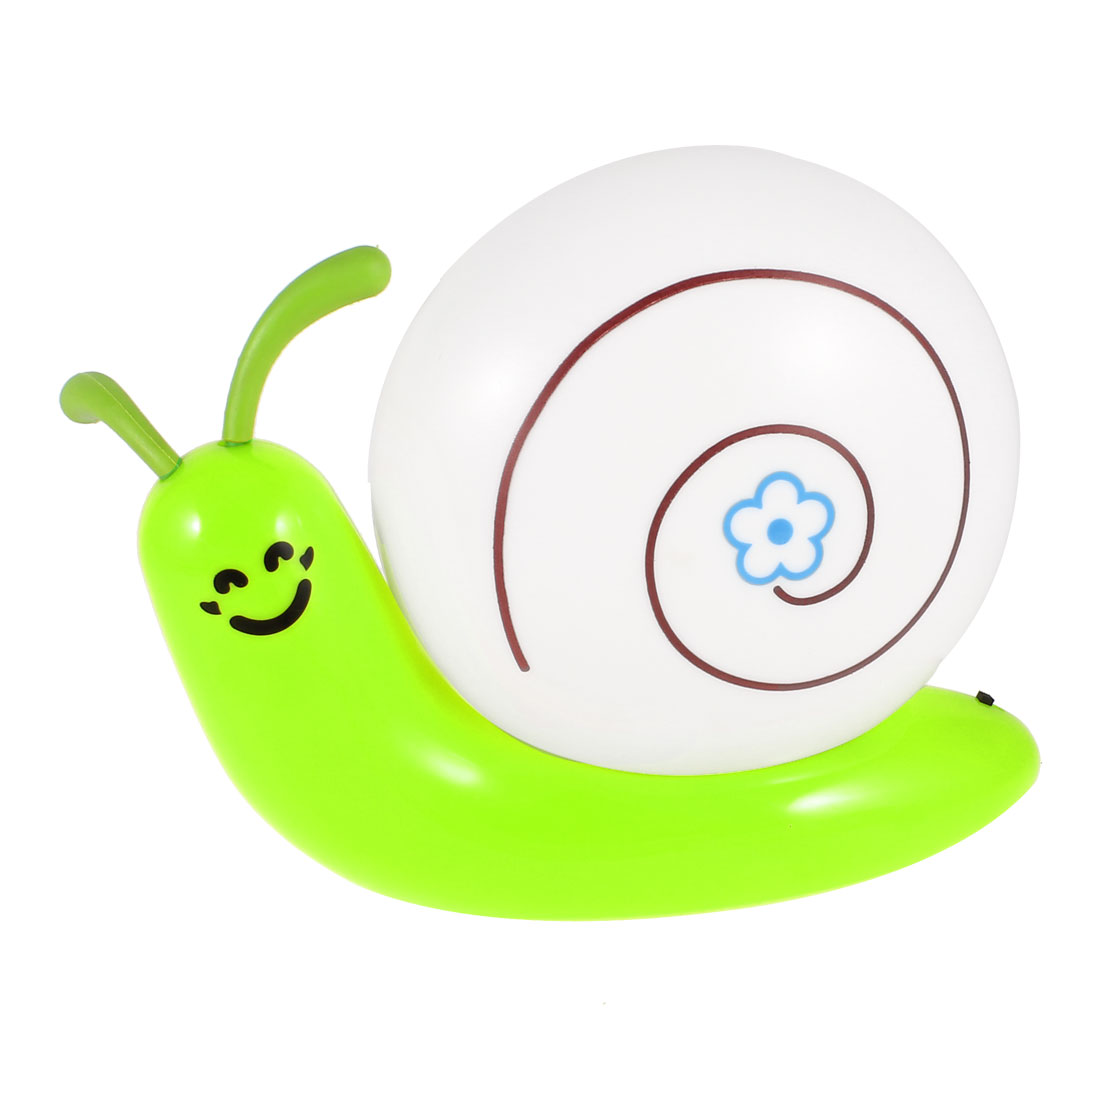 Green Snail Shaped White LED USB Rechargeable Night Light Bedroom Lamp